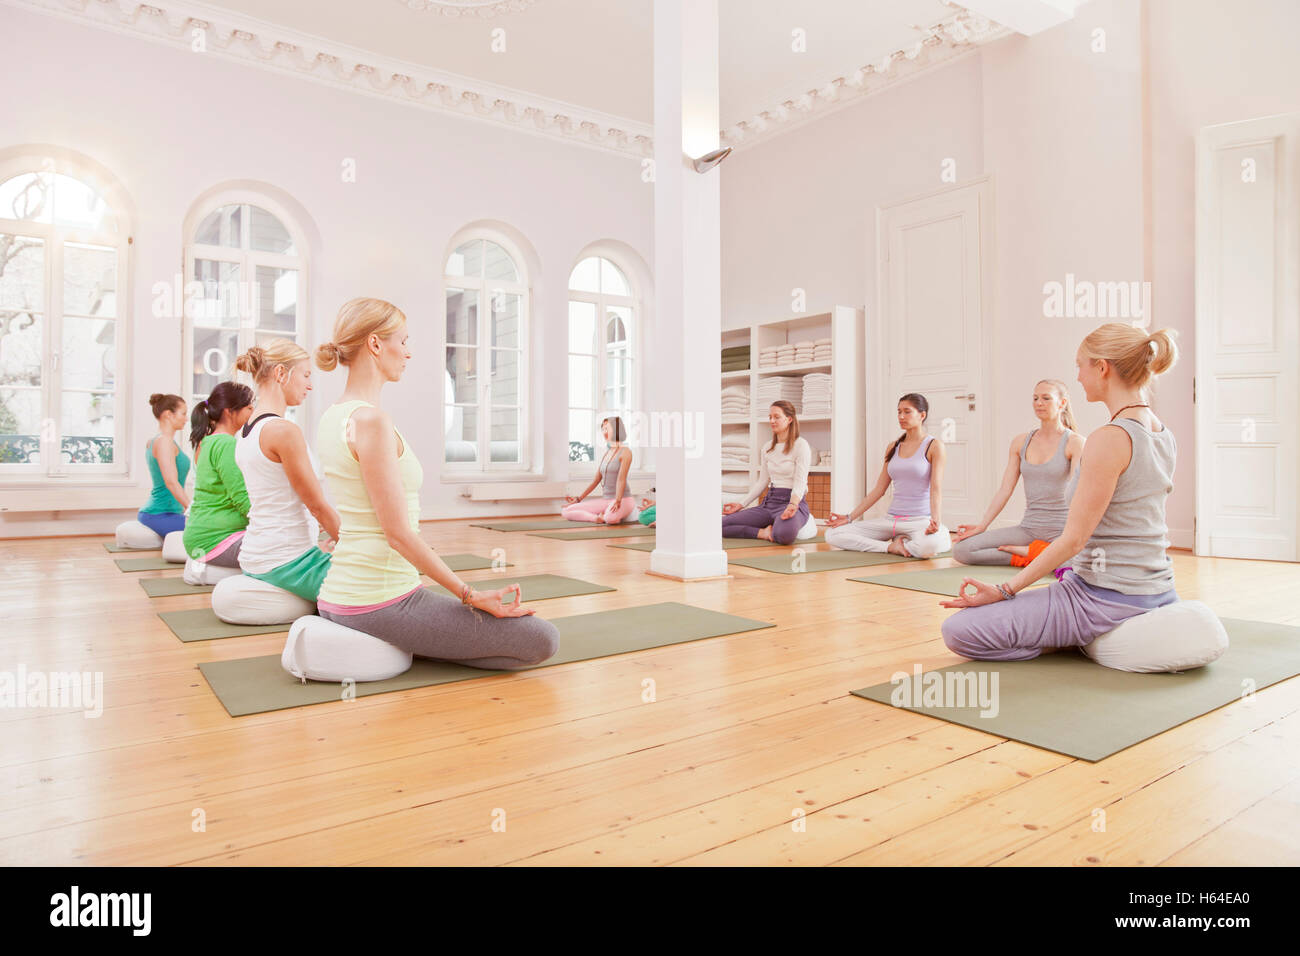 Group of women in yoga studio sitting in Lotus pose with instructor - Stock Image